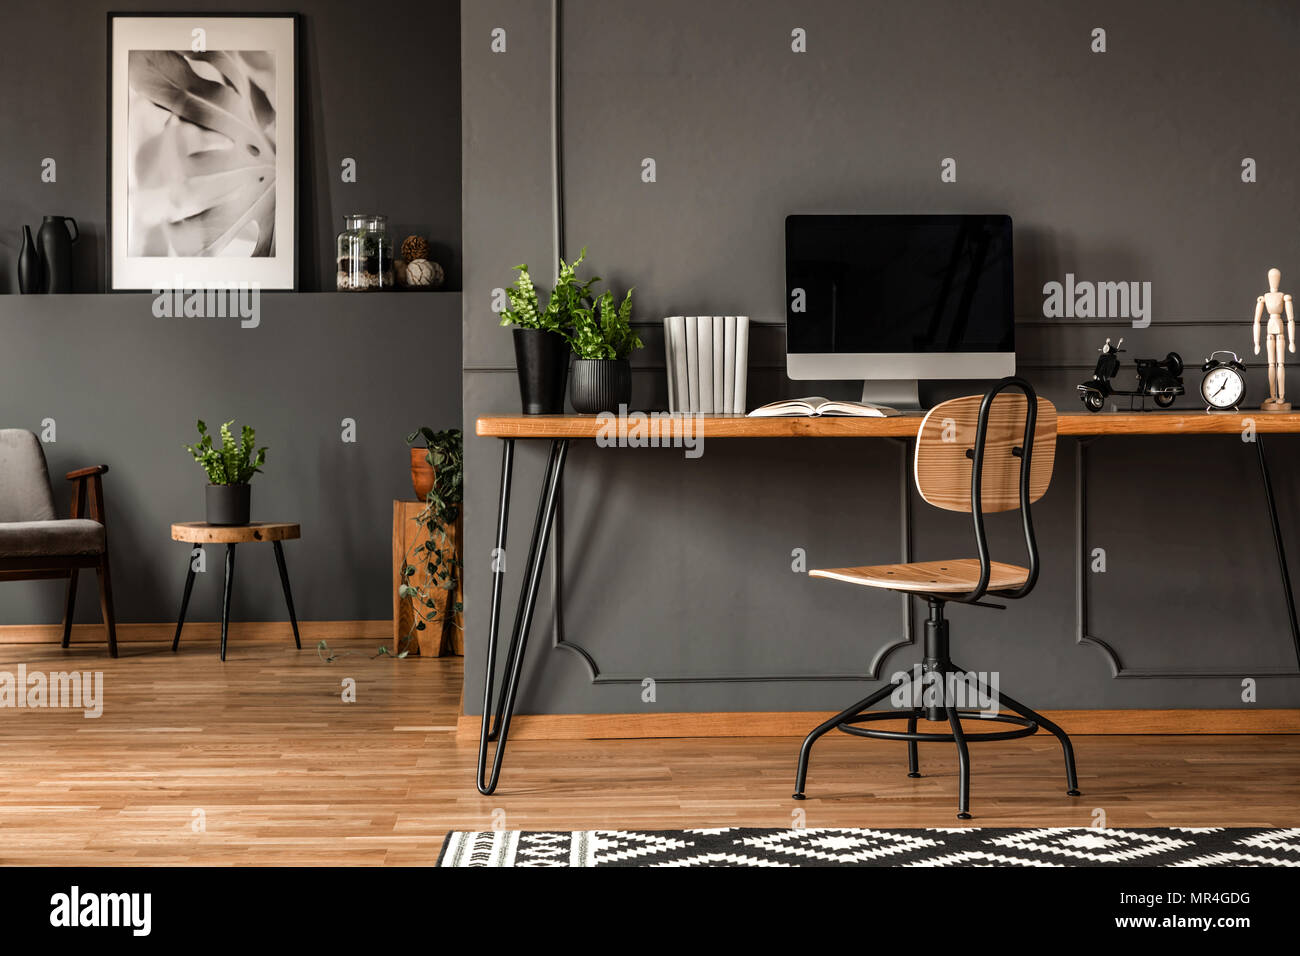 Real photo of an open space interior with black walls and molding. Workspace with desk, chair and computer in the foreground and living room with gray - Stock Image